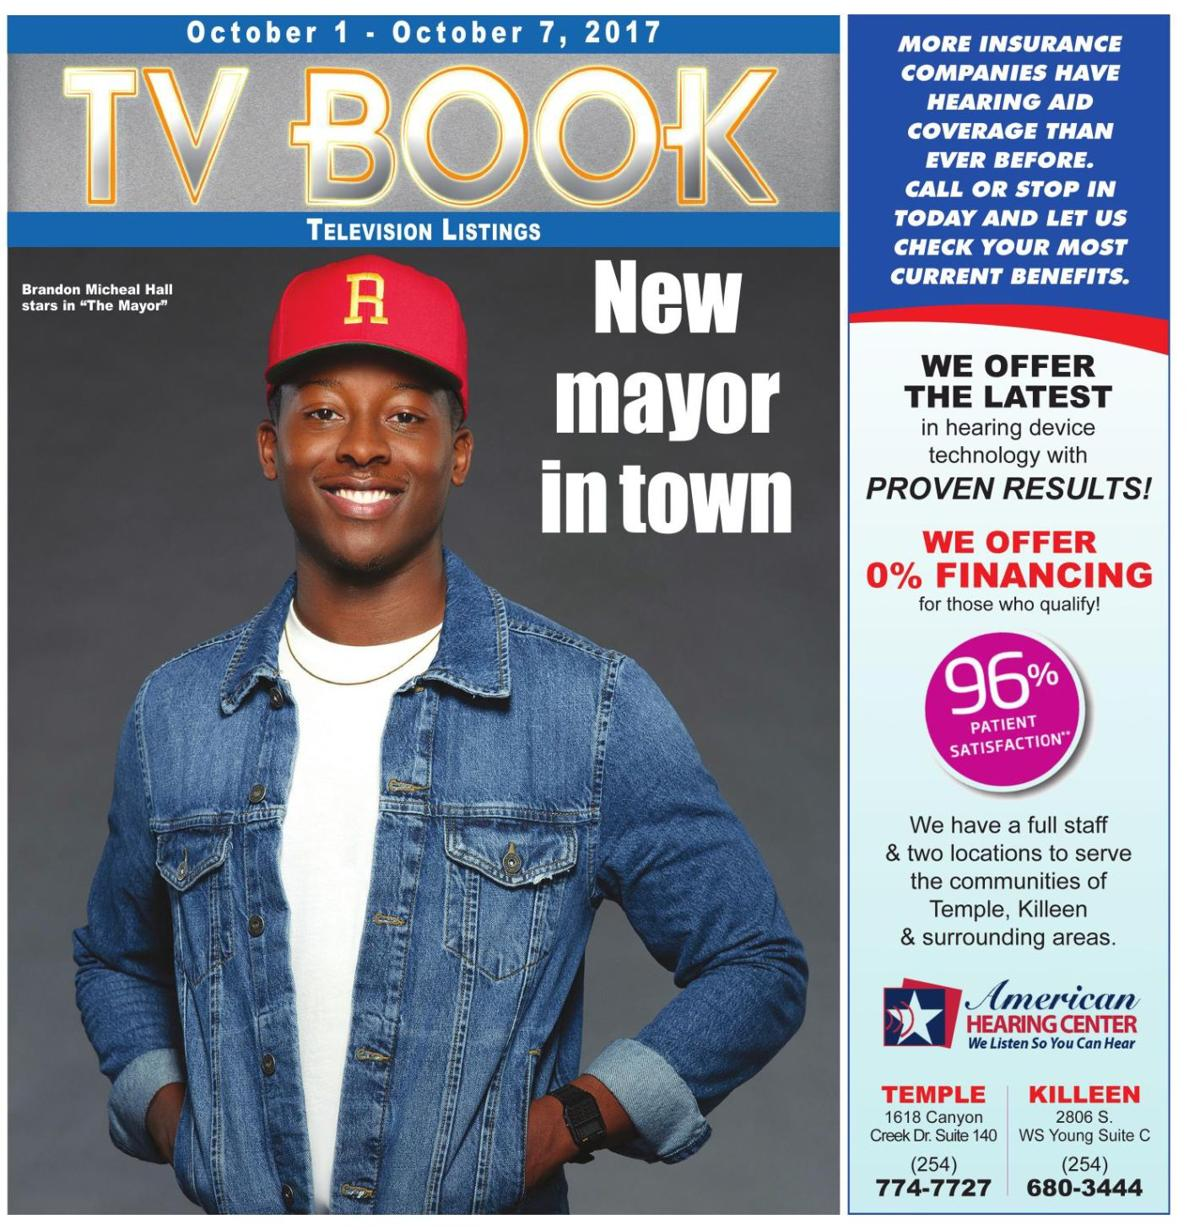 TV Book October 1st - 7th